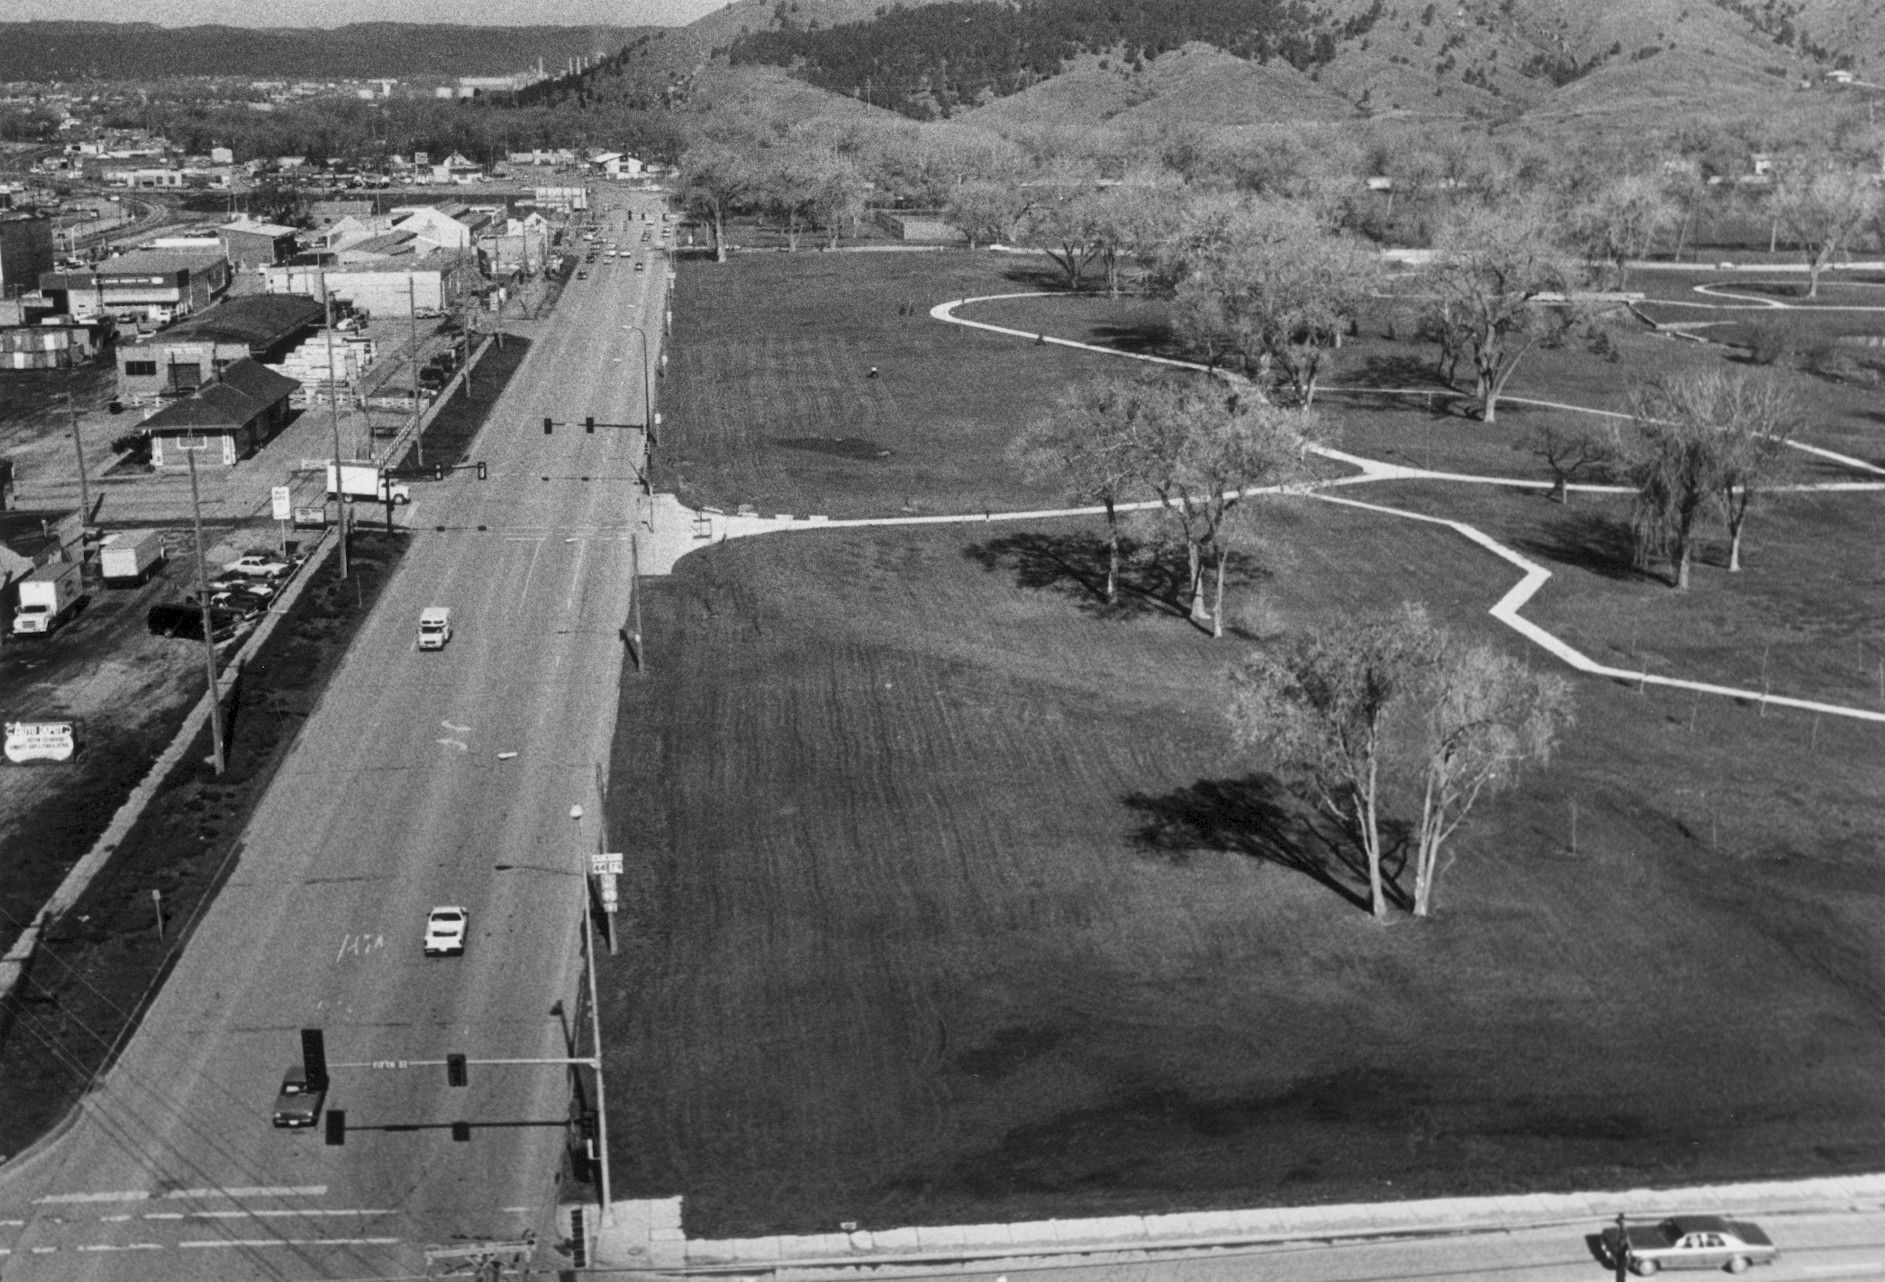 Looking west on Omaha Street, after the development of the greenway (photo courtesy of the Rapid City Journal)